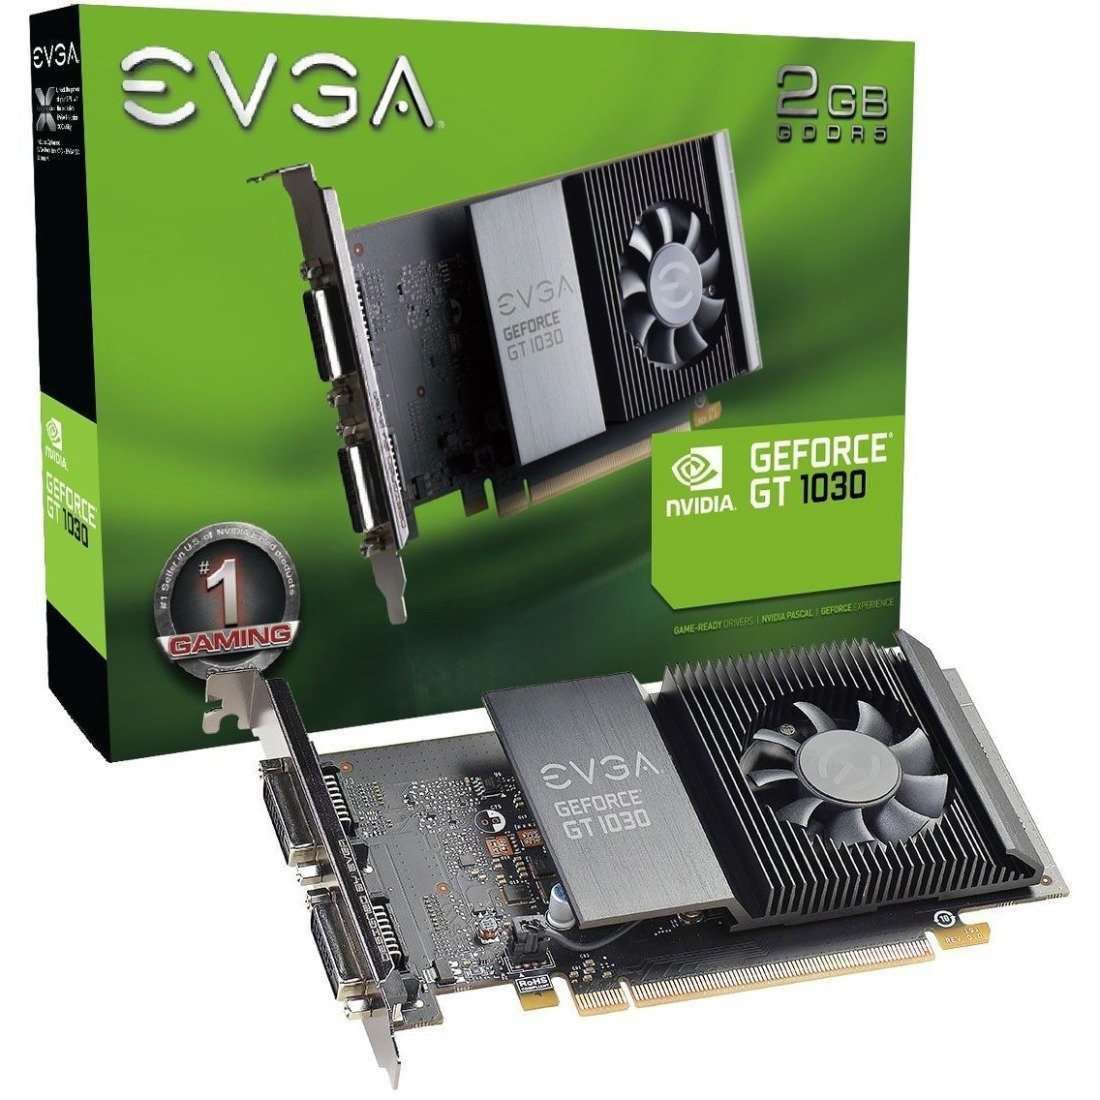 EVGA GeForce GT 1030 Graphic Card - 1.29 GHz Core - 1.54 GHz Boost Clock - 2 GB GDDR5 - Full-height - Single Slot Space Required